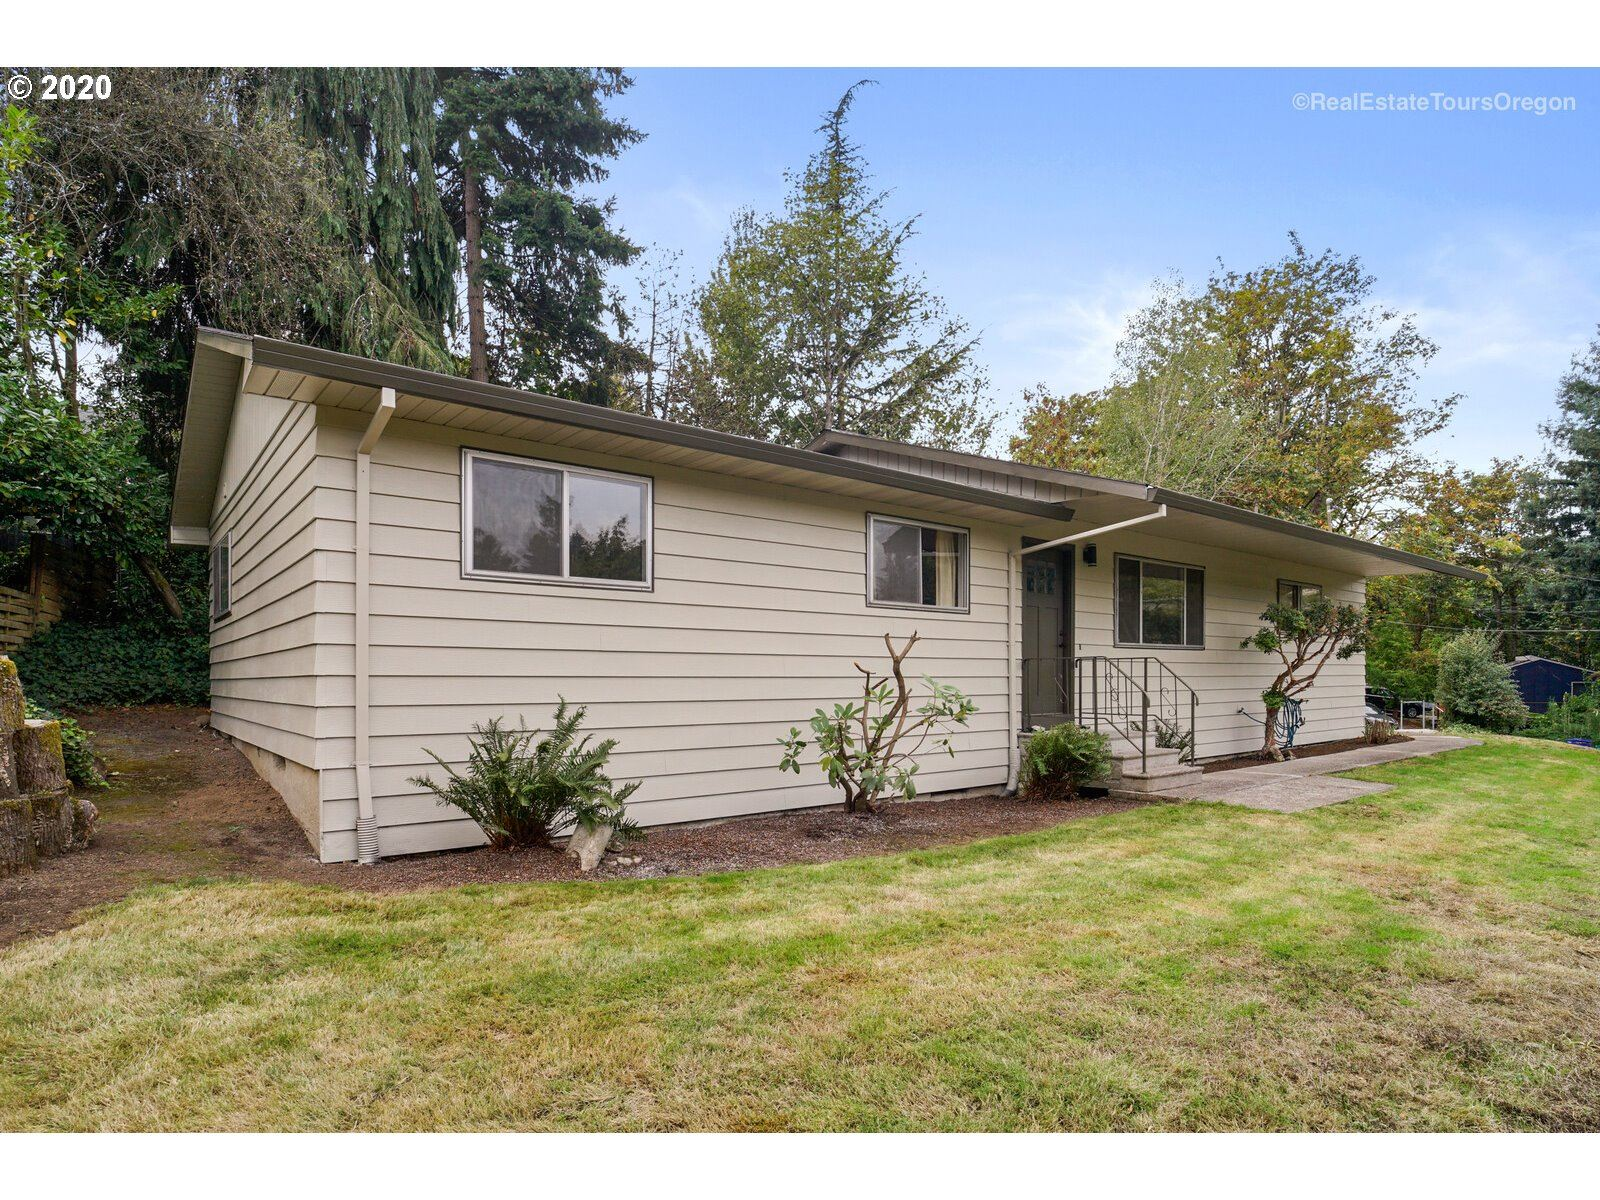 7743 SW 4TH AVE, Portland, OR 97219 - MLS#: 20676457